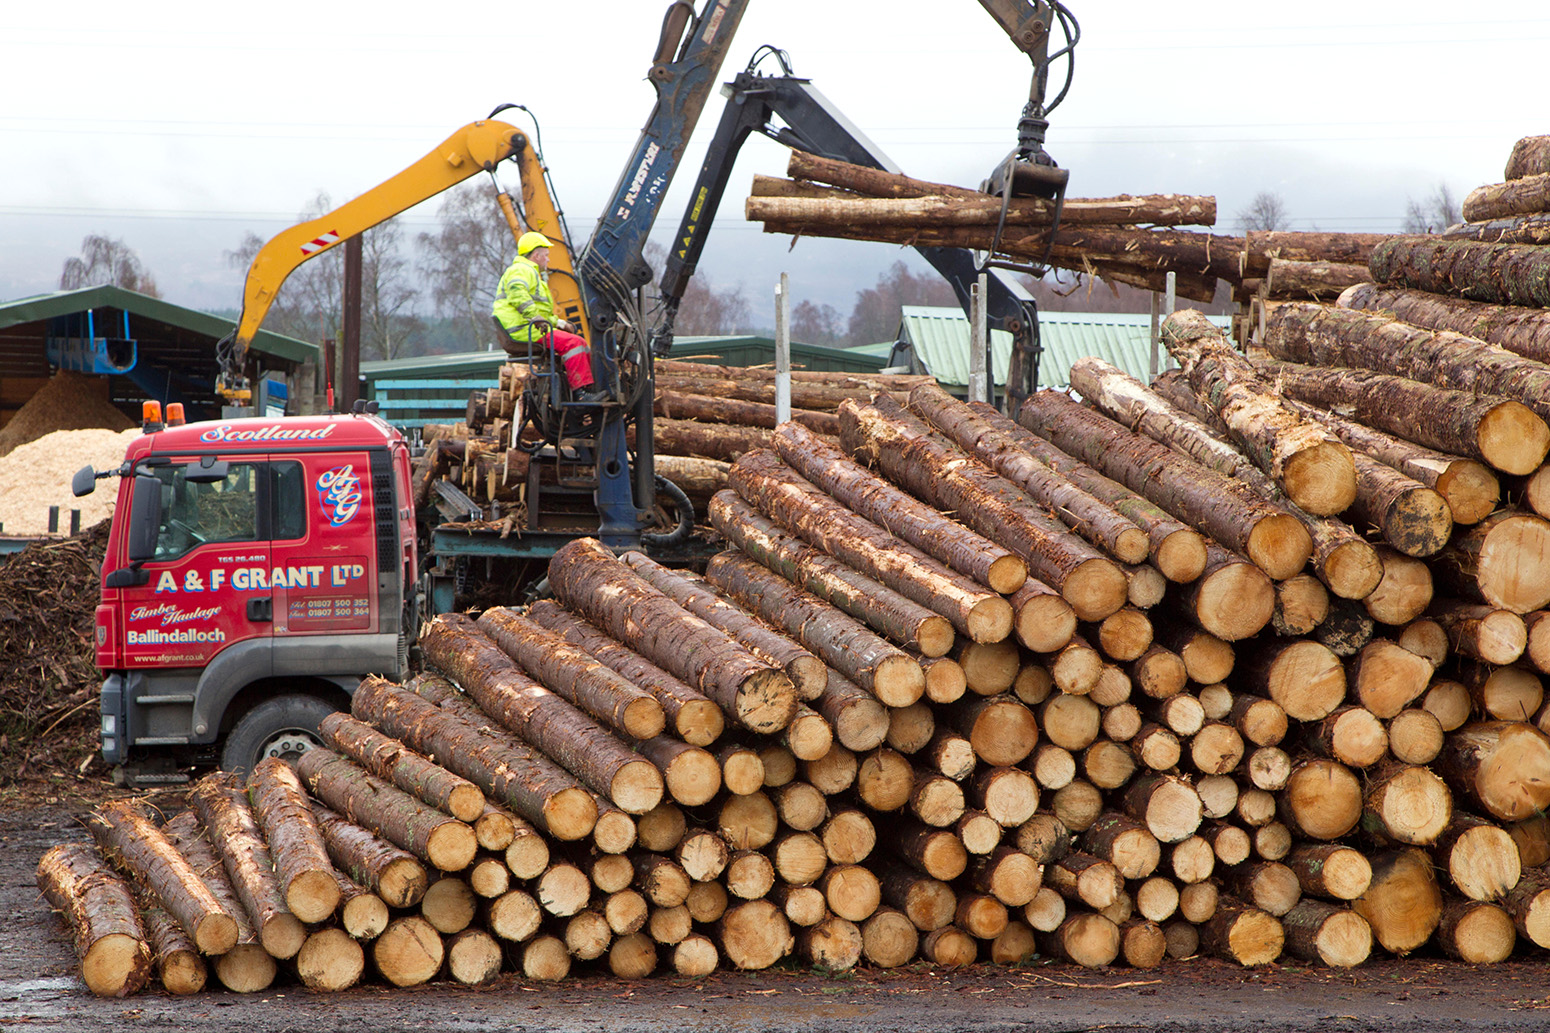 Processing spruce tree trunks at a sawmill, Inverness-shire, Scotland, UK. Credit: Nature Picture Library / Alamy Stock Photo. W7MRYN